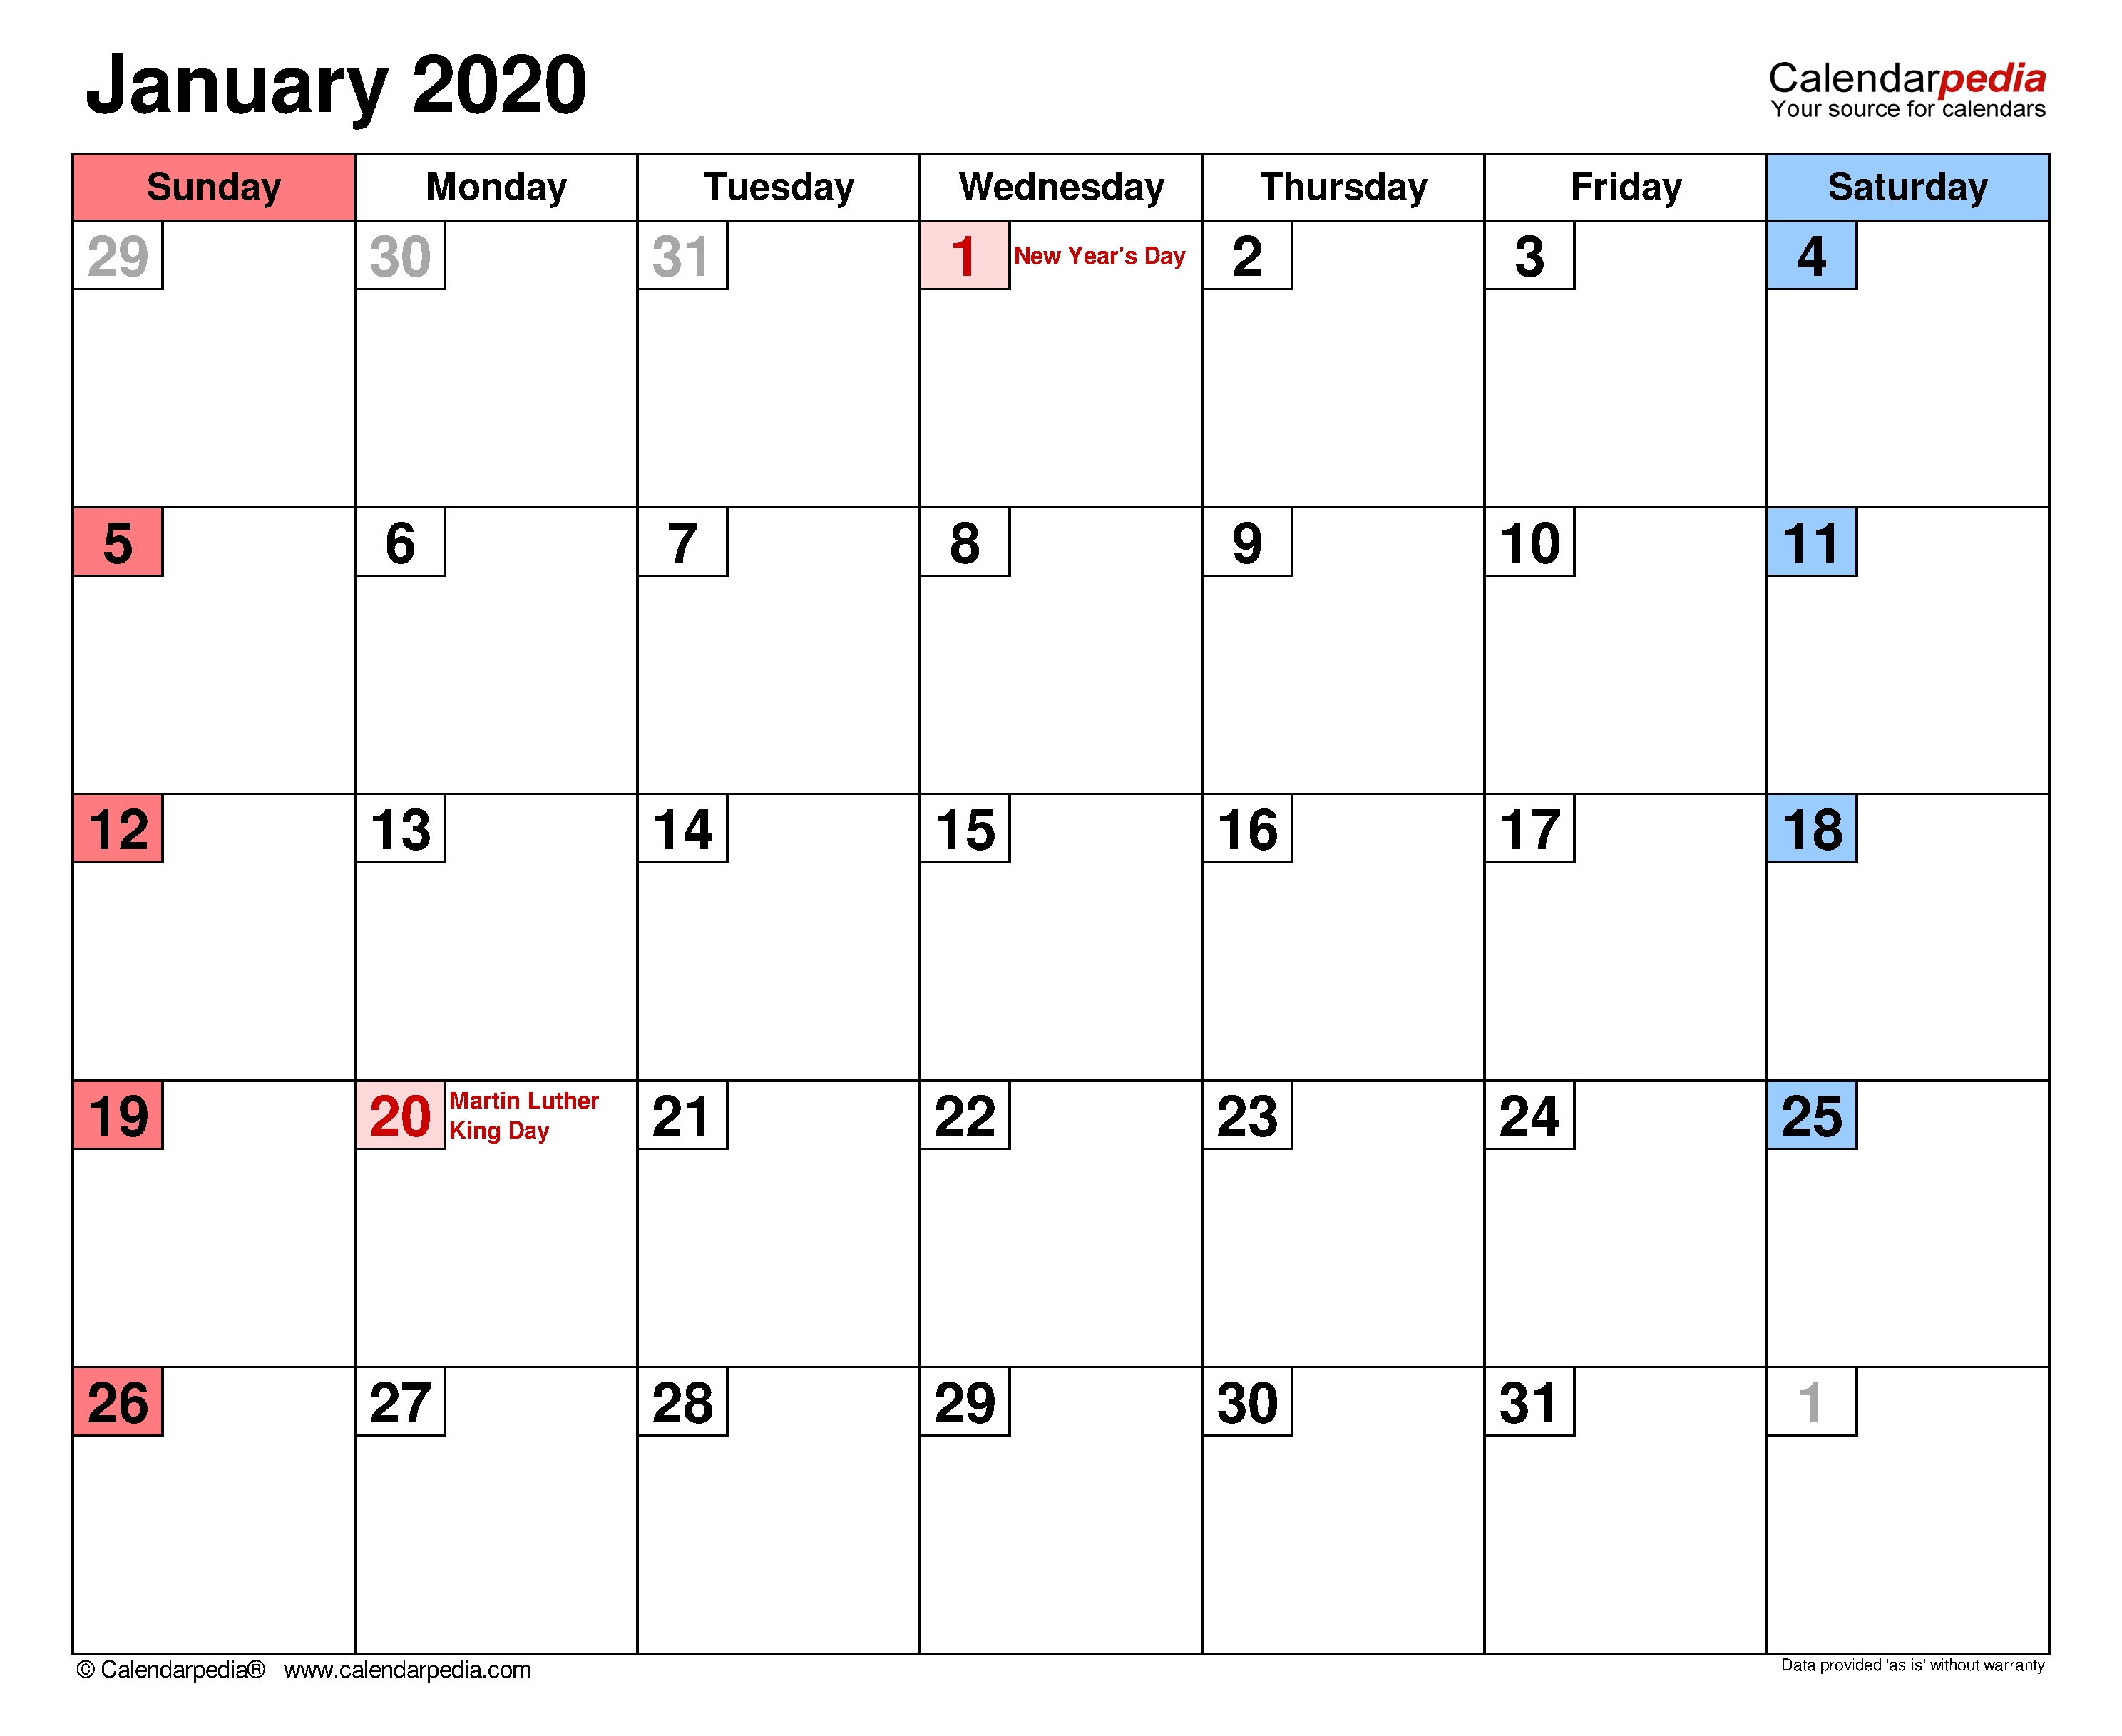 January 2020 - Calendar Templates For Word, Excel And Pdf